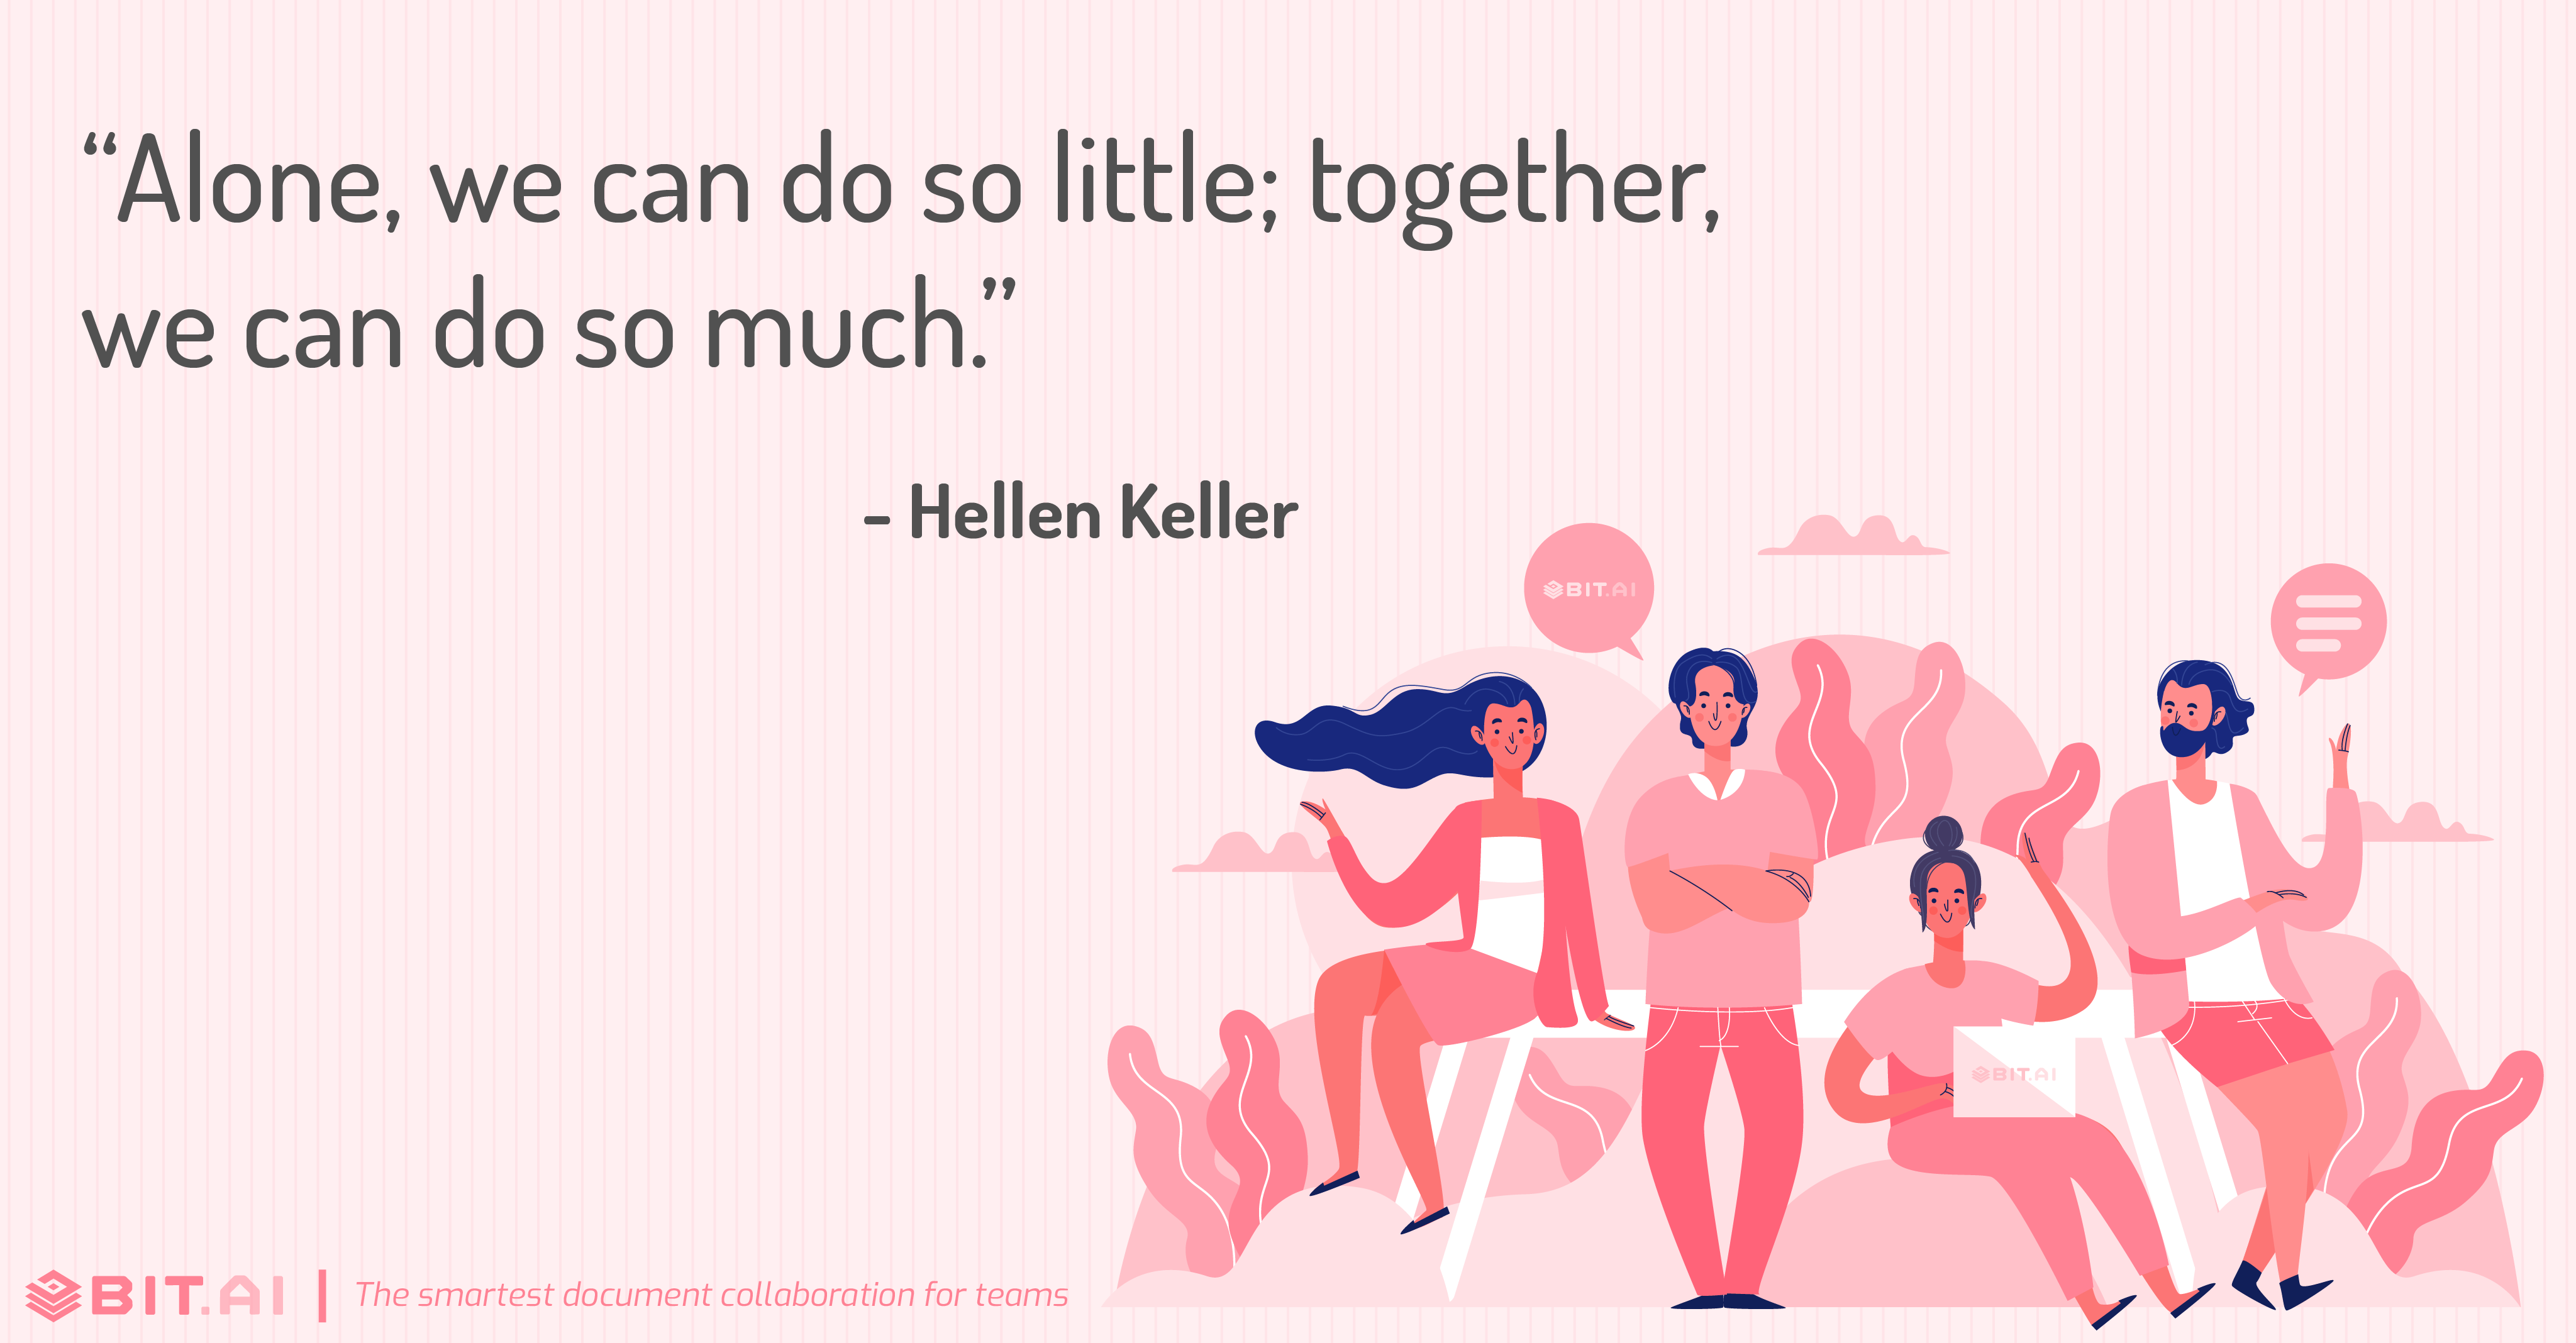 """Alone, we can do so little; together, we can do so much."" - Helen Keller"